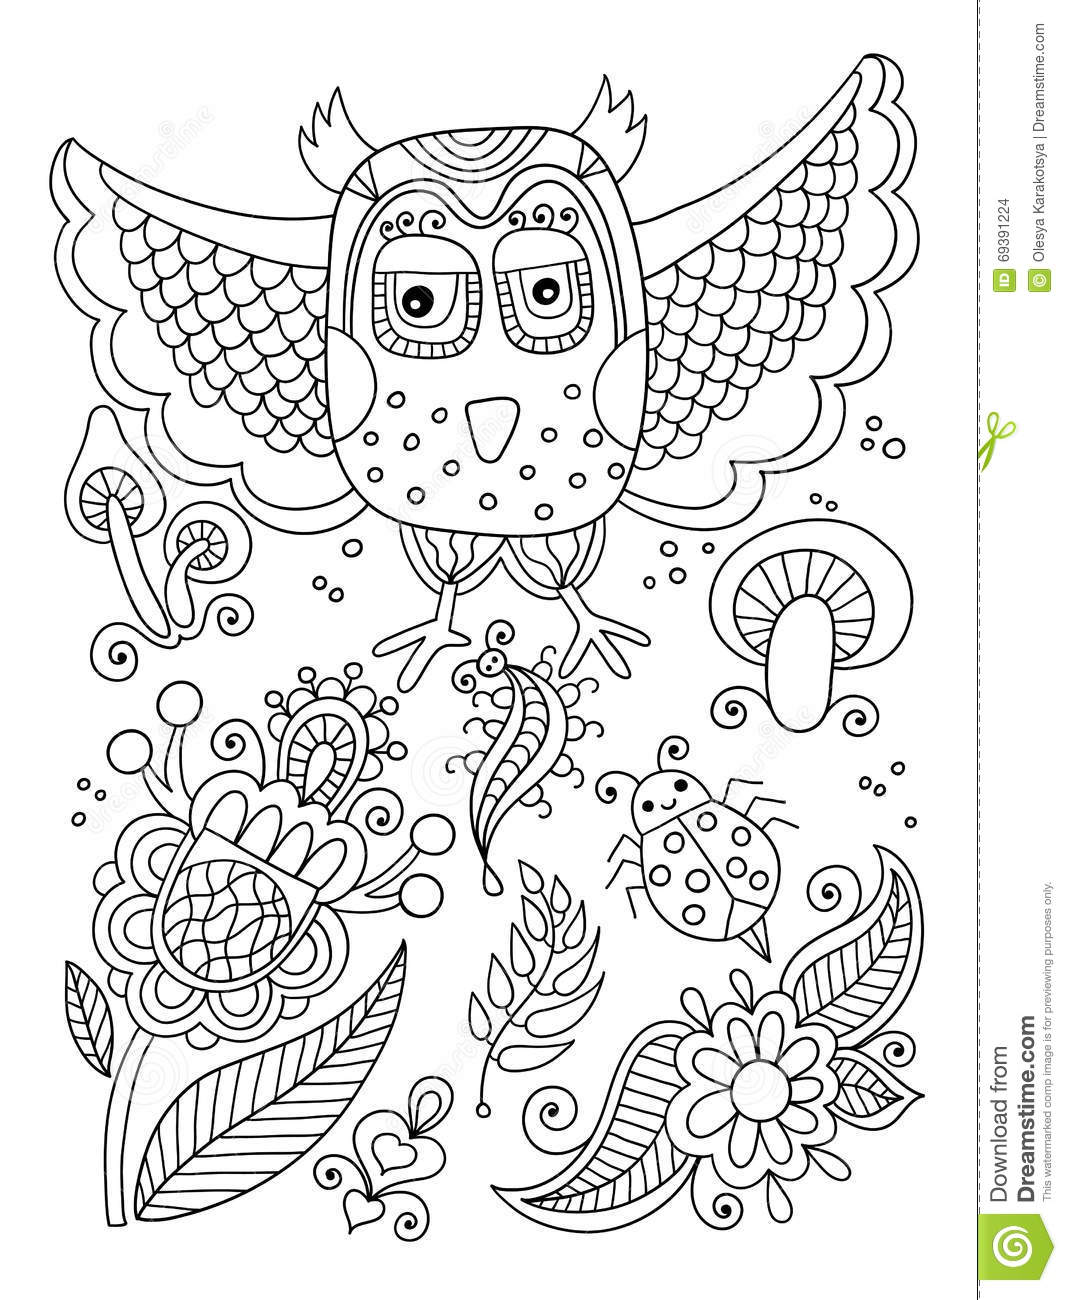 Line Drawing Of Forest Elements Owl Flowers Mushrooms